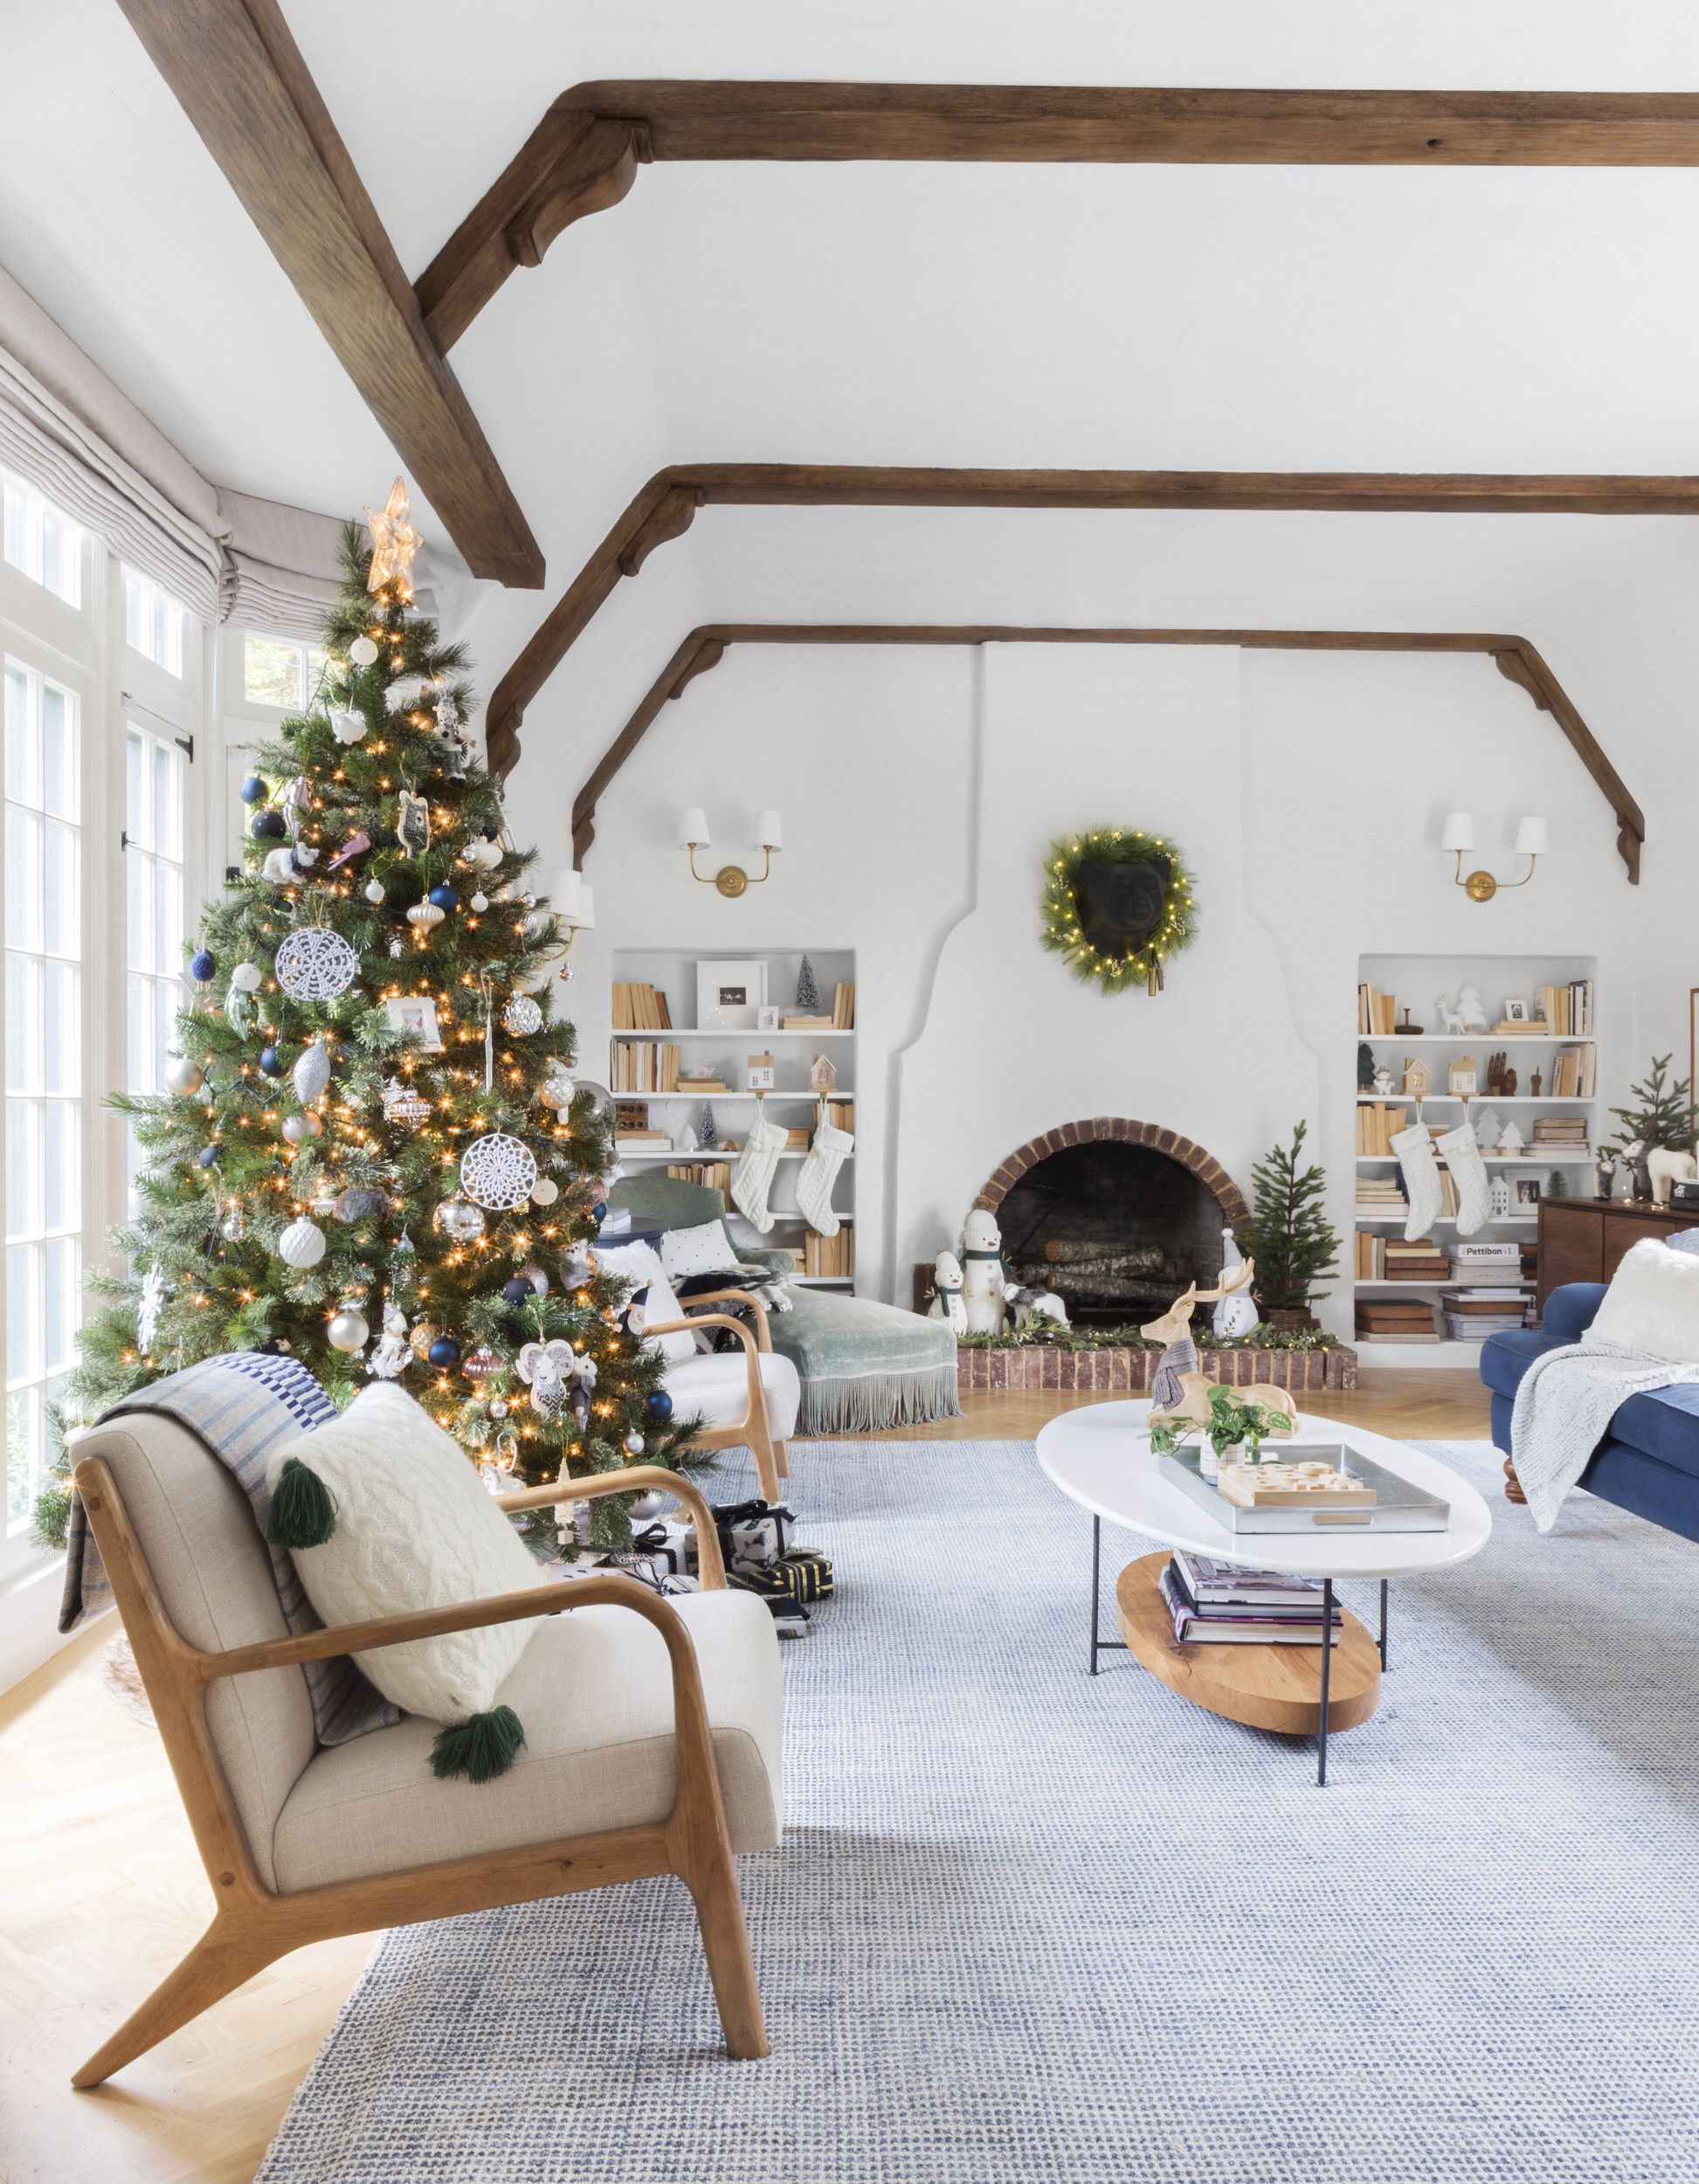 Our Living Room Holiday Reveal | Pinterest | Christmas 2017, Neutral ...